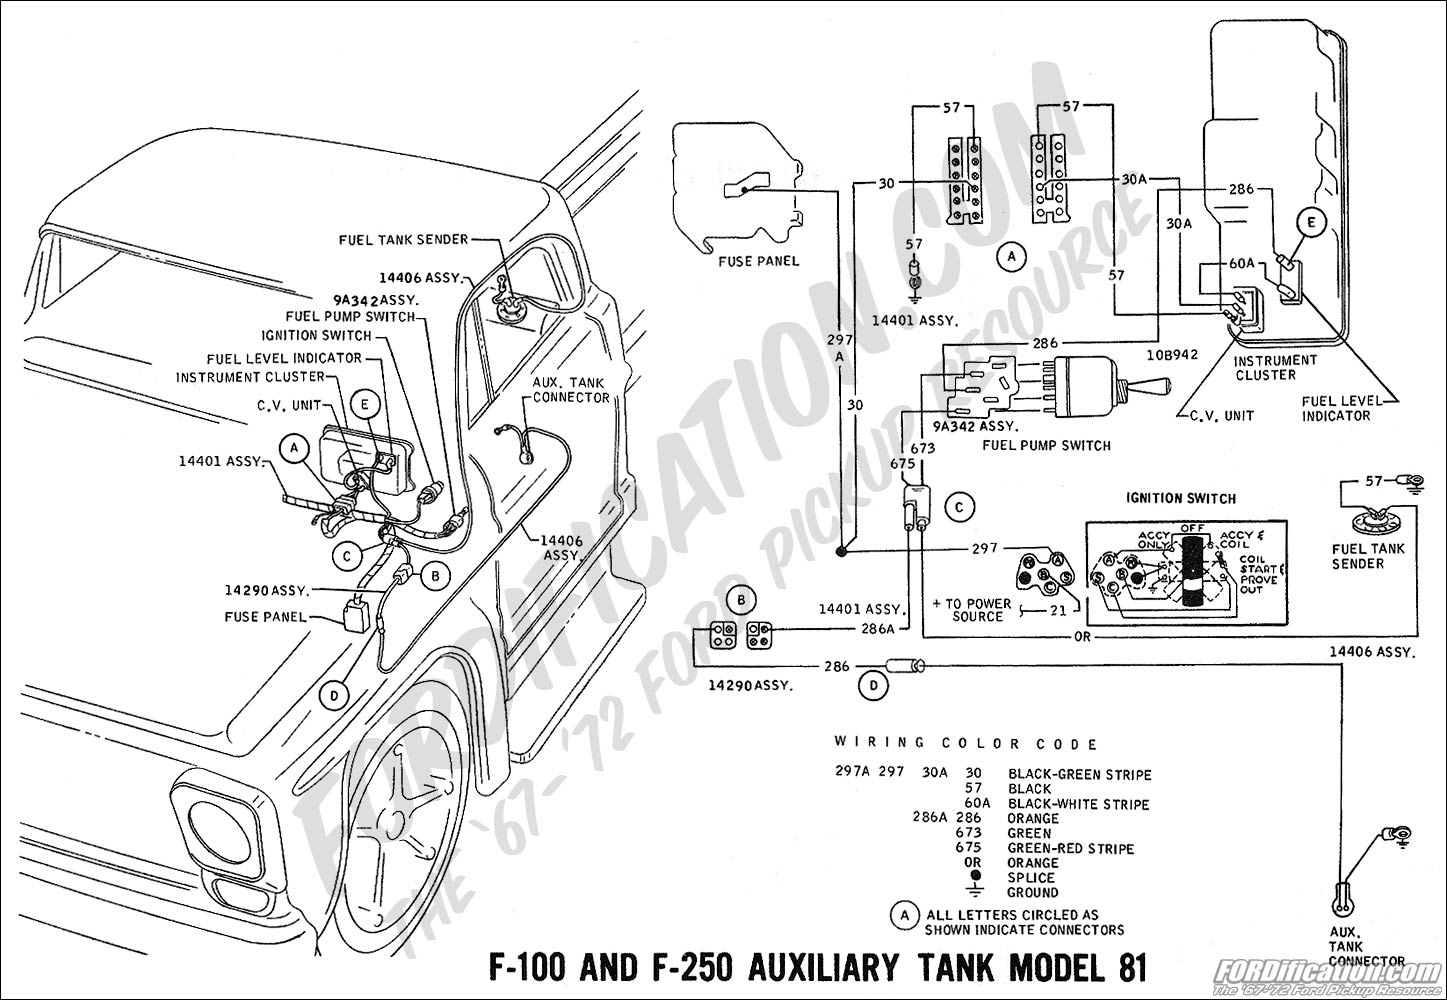 Ford F 250 Wiring Diagram Ford Auto Fuse Box Diagram